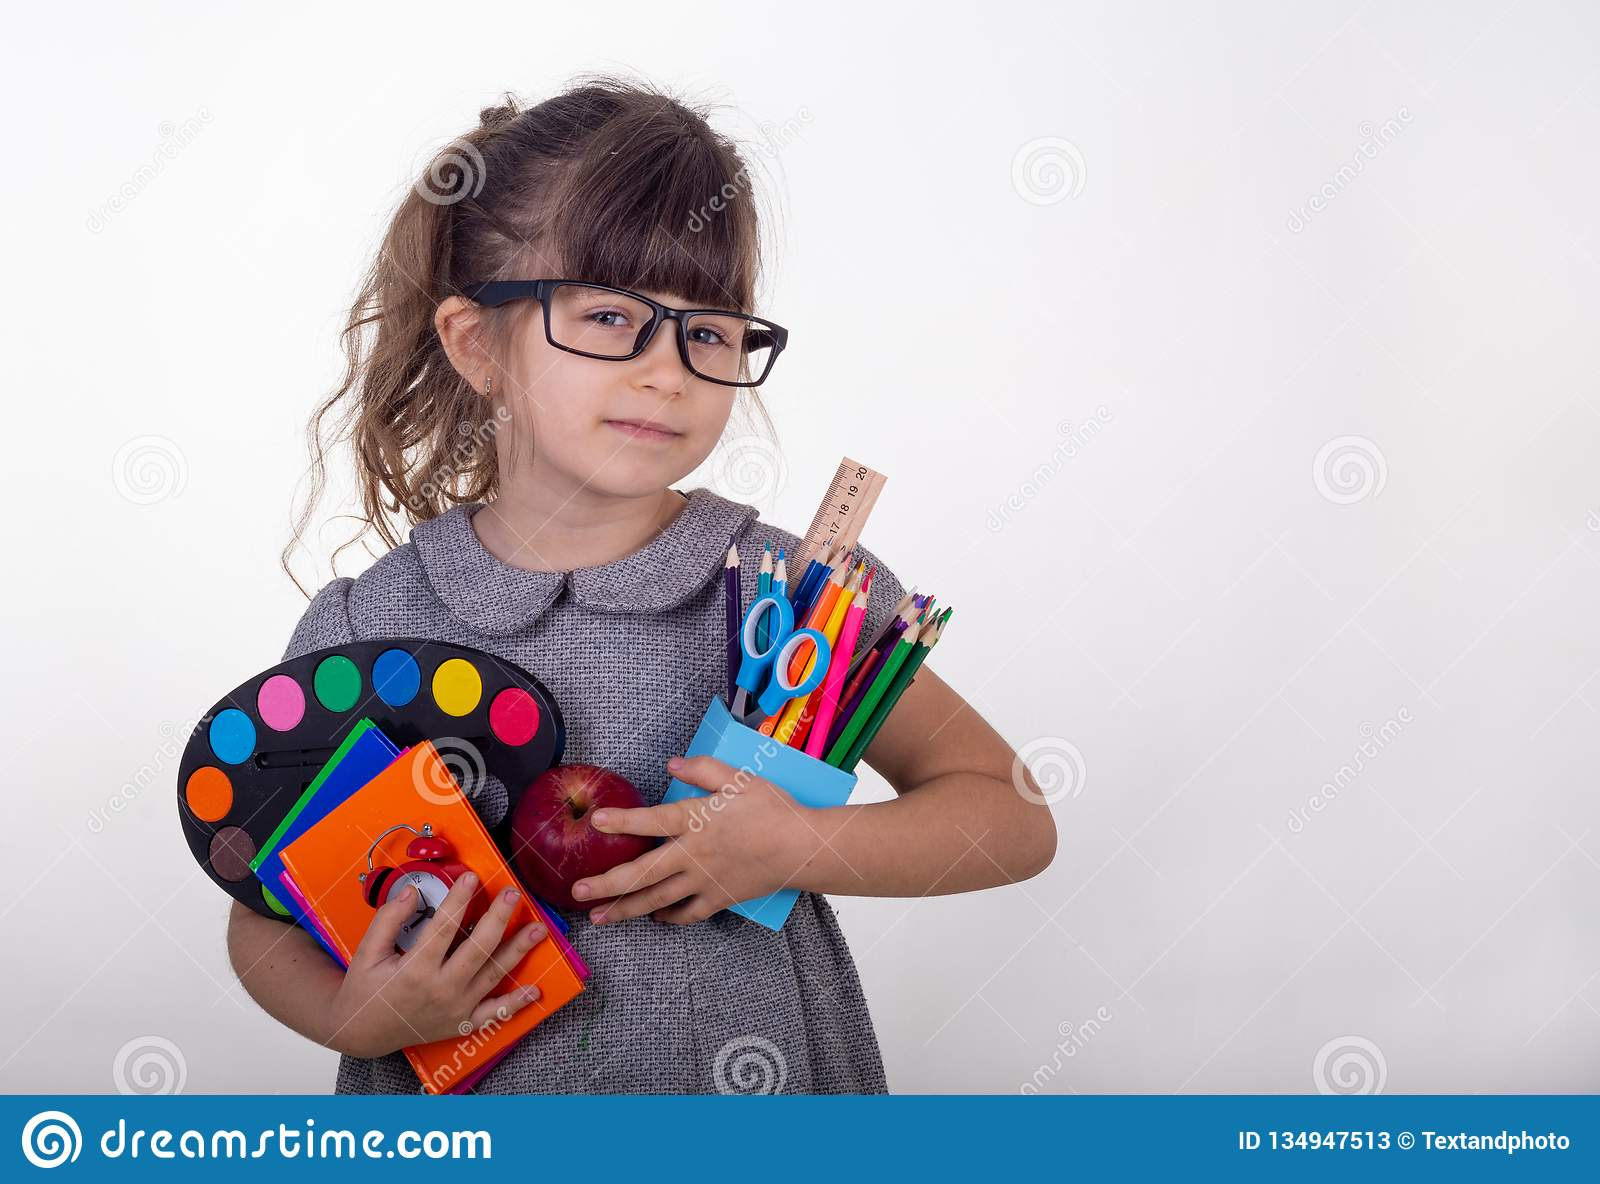 Kid ready for school. Cute clever child in eyeglasses holding school supplies: pens, notebooks, scissors and apple.